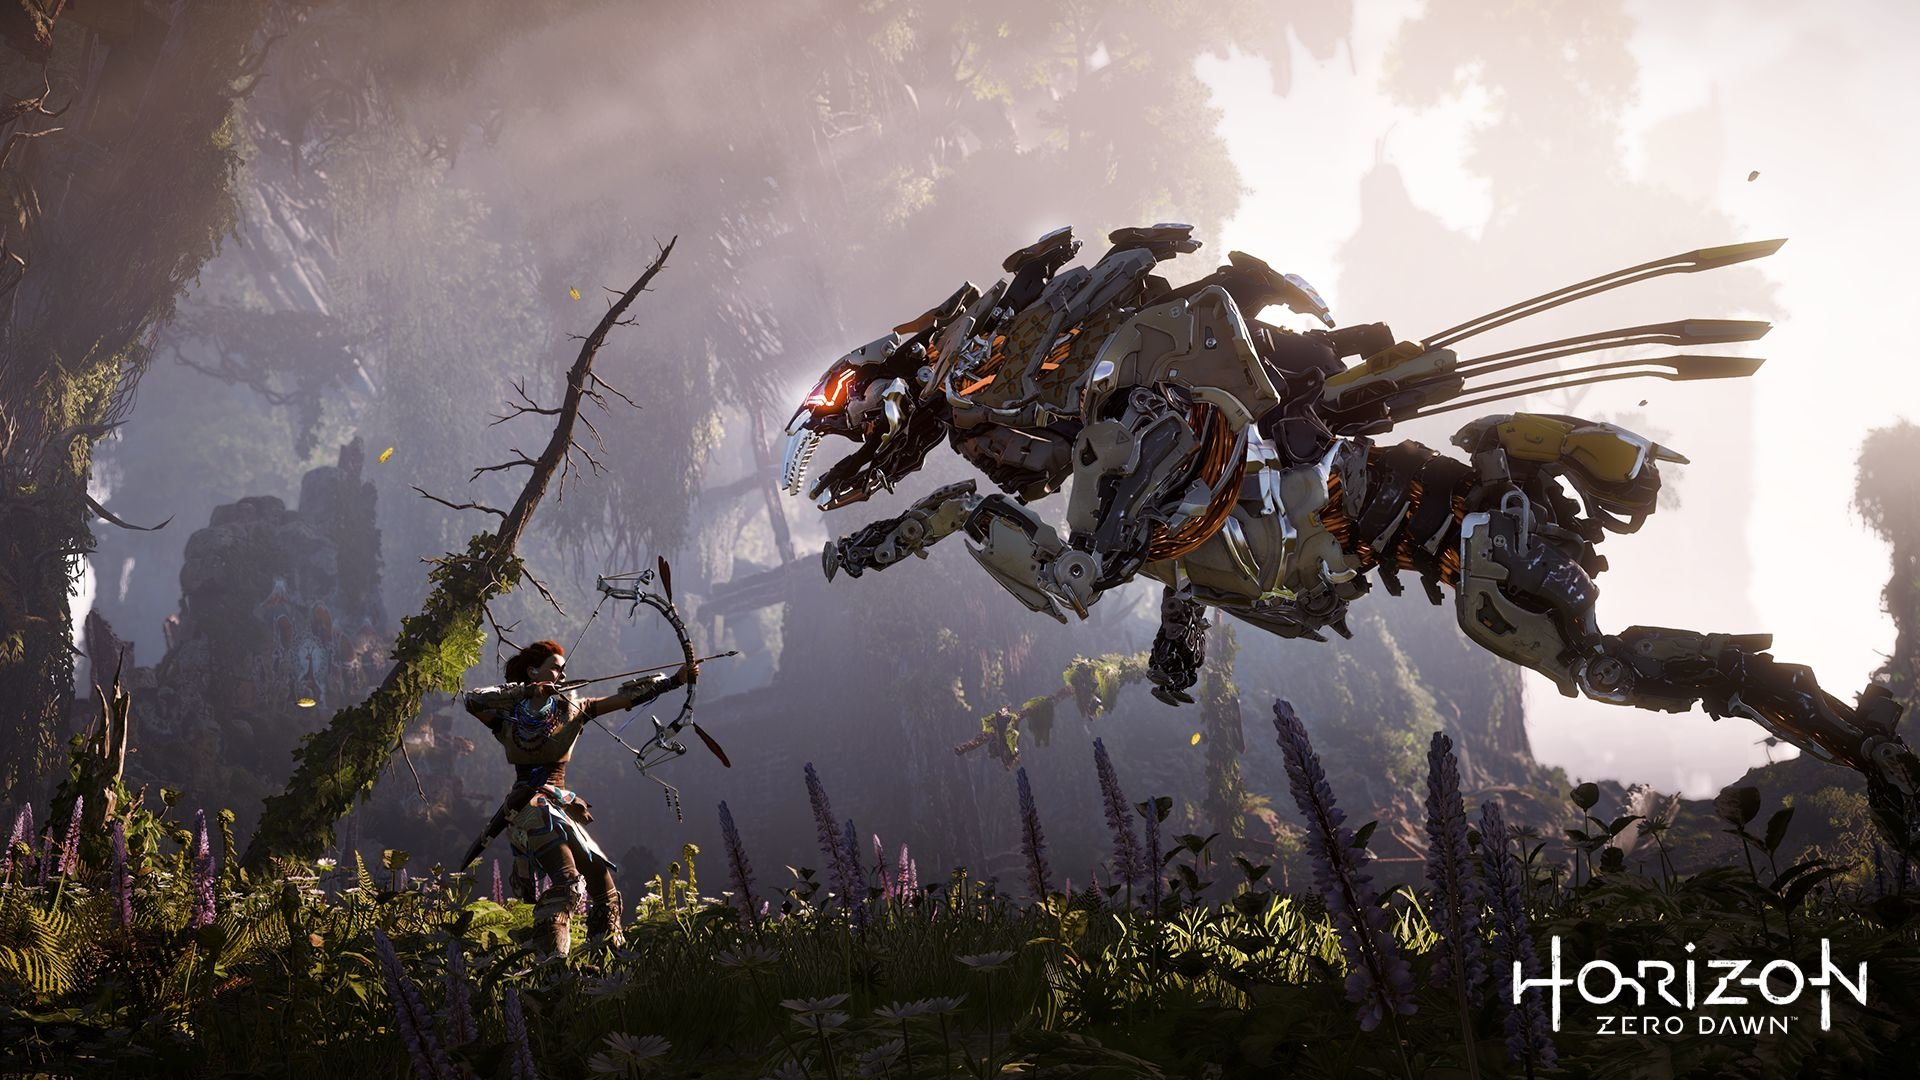 161 Horizon Zero Dawn HD Wallpapers   Background Images   Wallpaper     Aloy Horizon Zero Dawn      HD Wallpaper   Background Image ID 718521